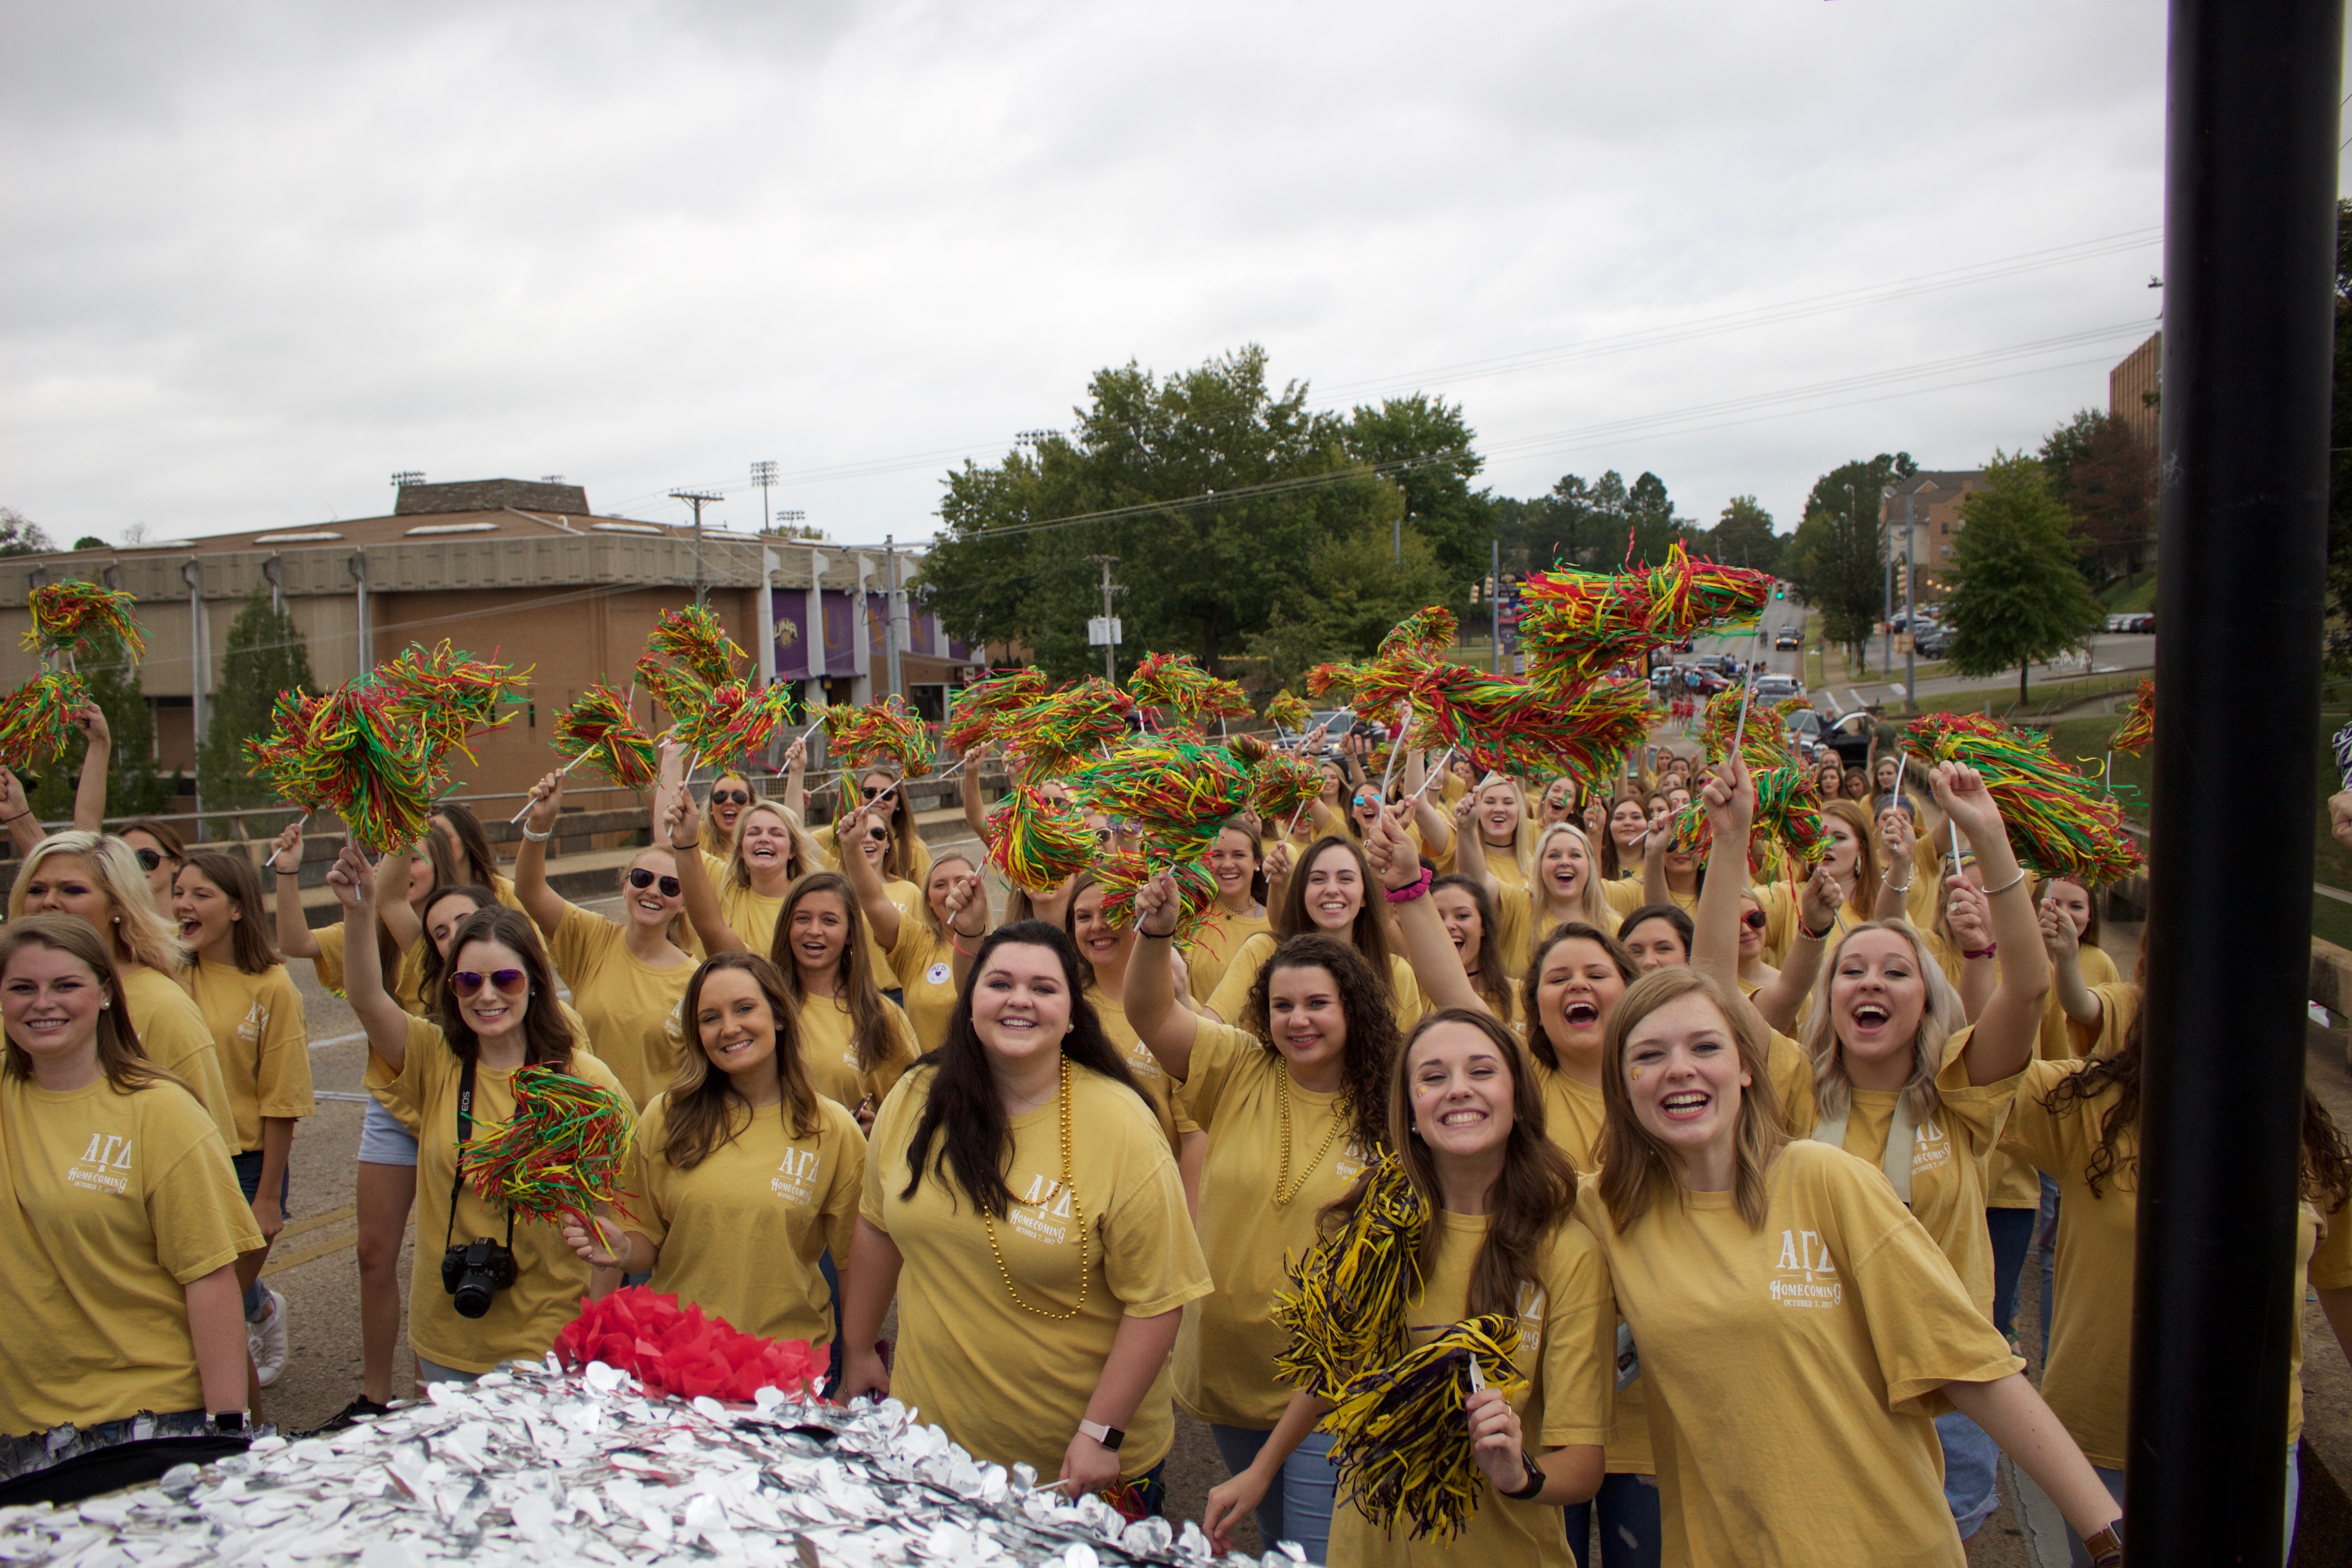 Alpha Gamma Delta members in yellow shirts cheering with green, red, and yellow poms during homecoming parade.